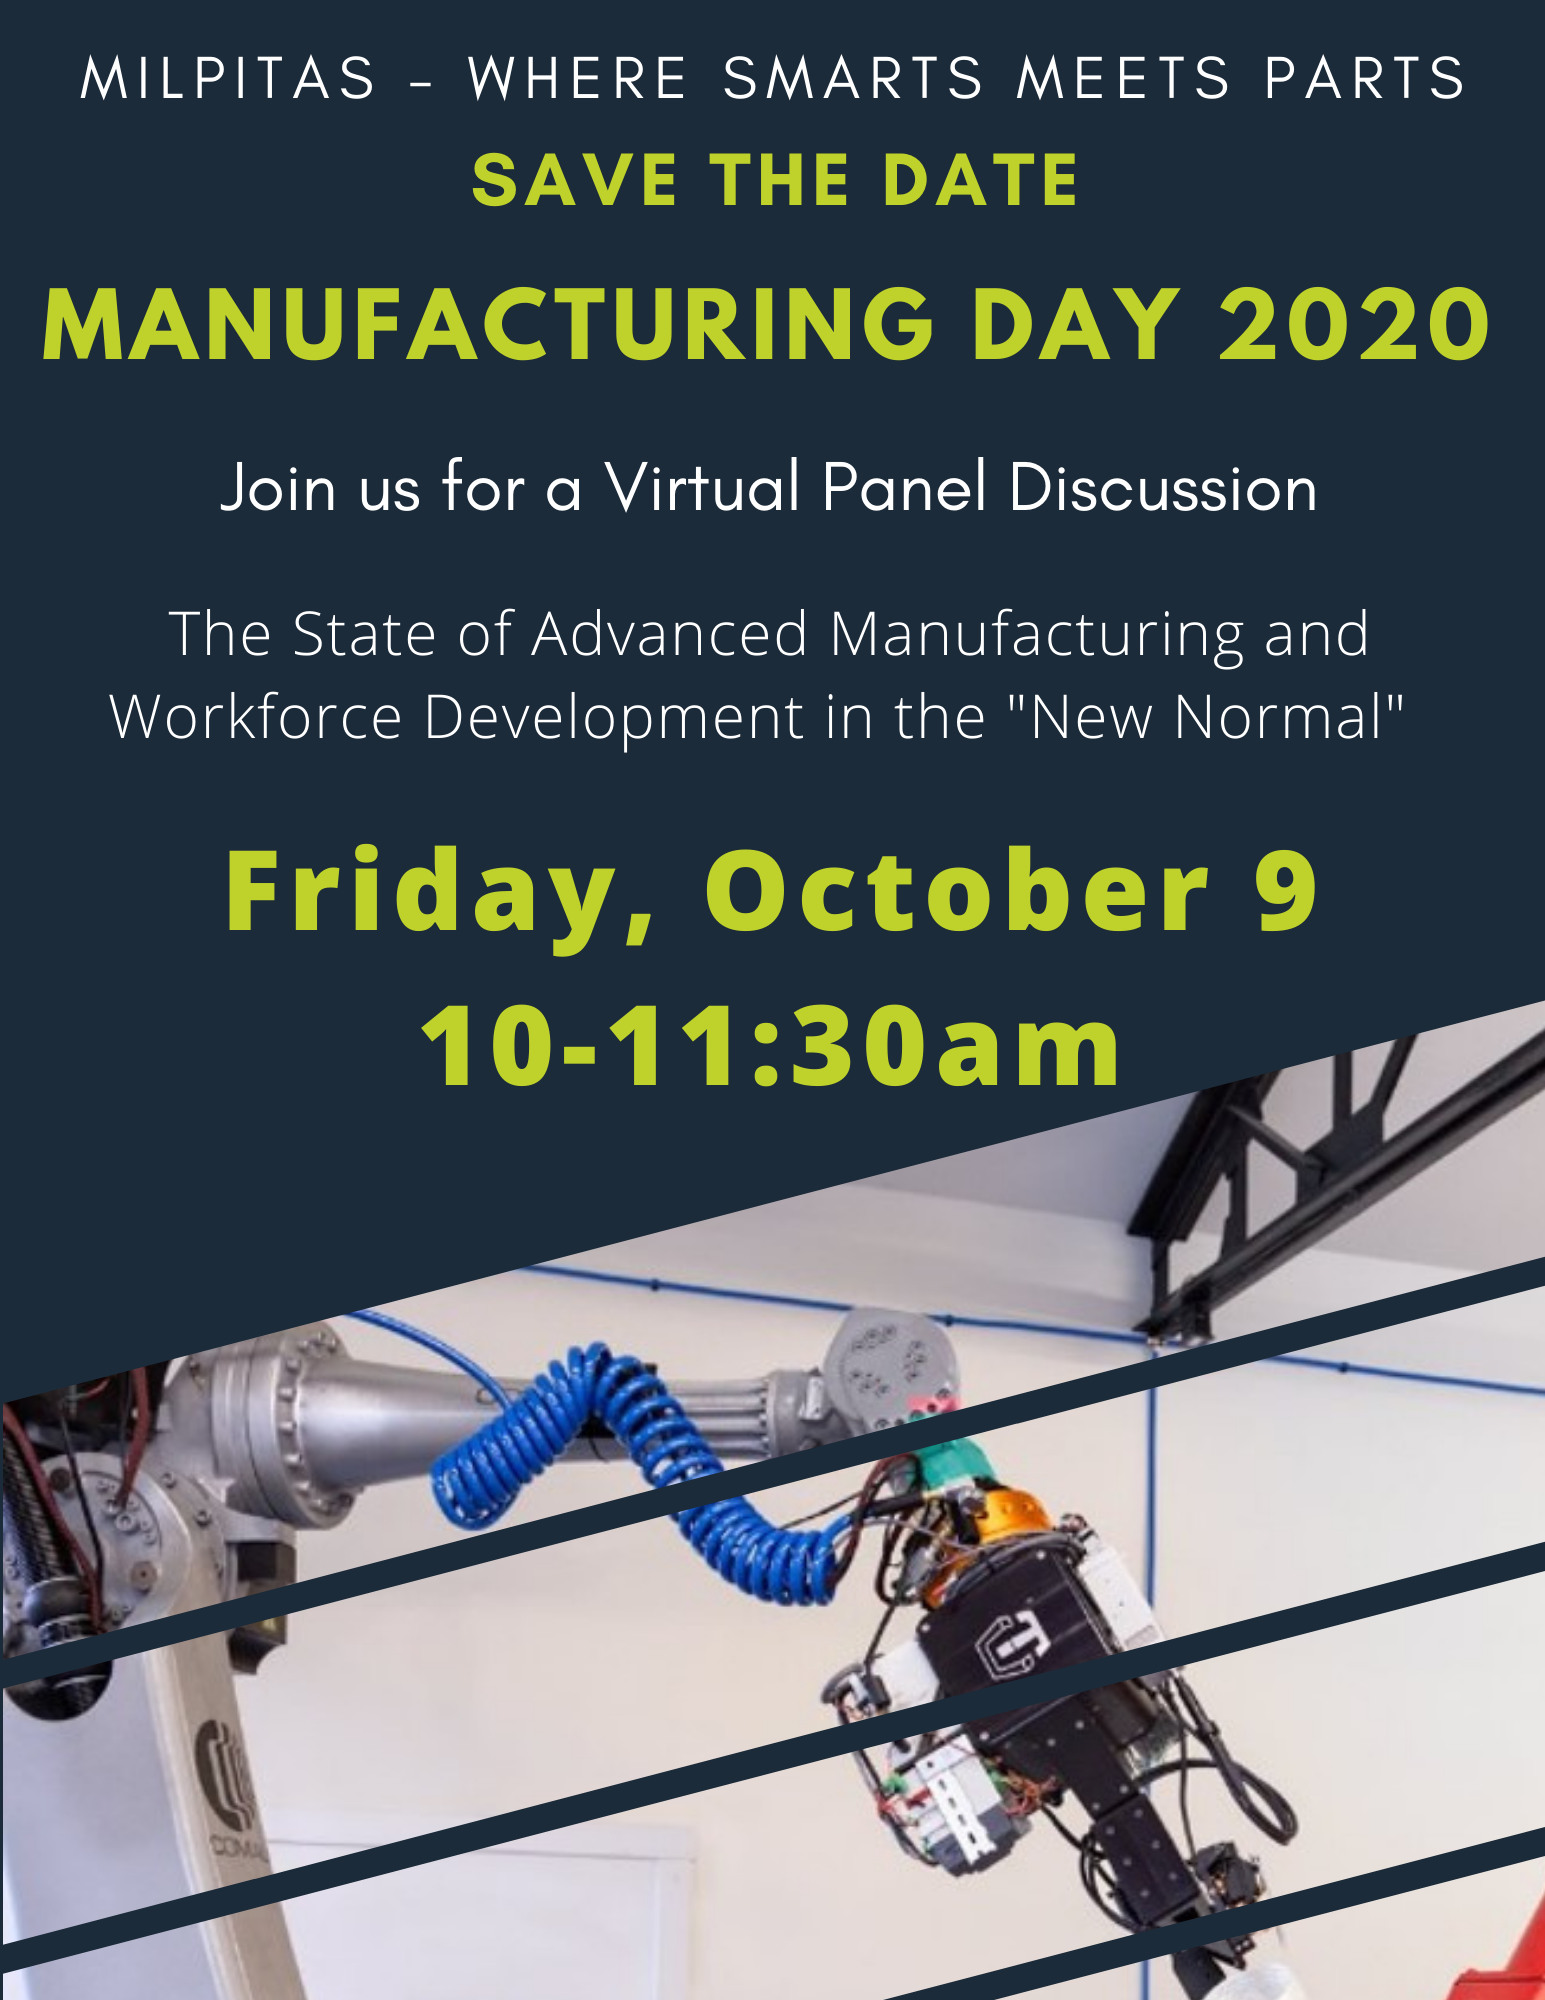 Manufacturing Day - Save the Date